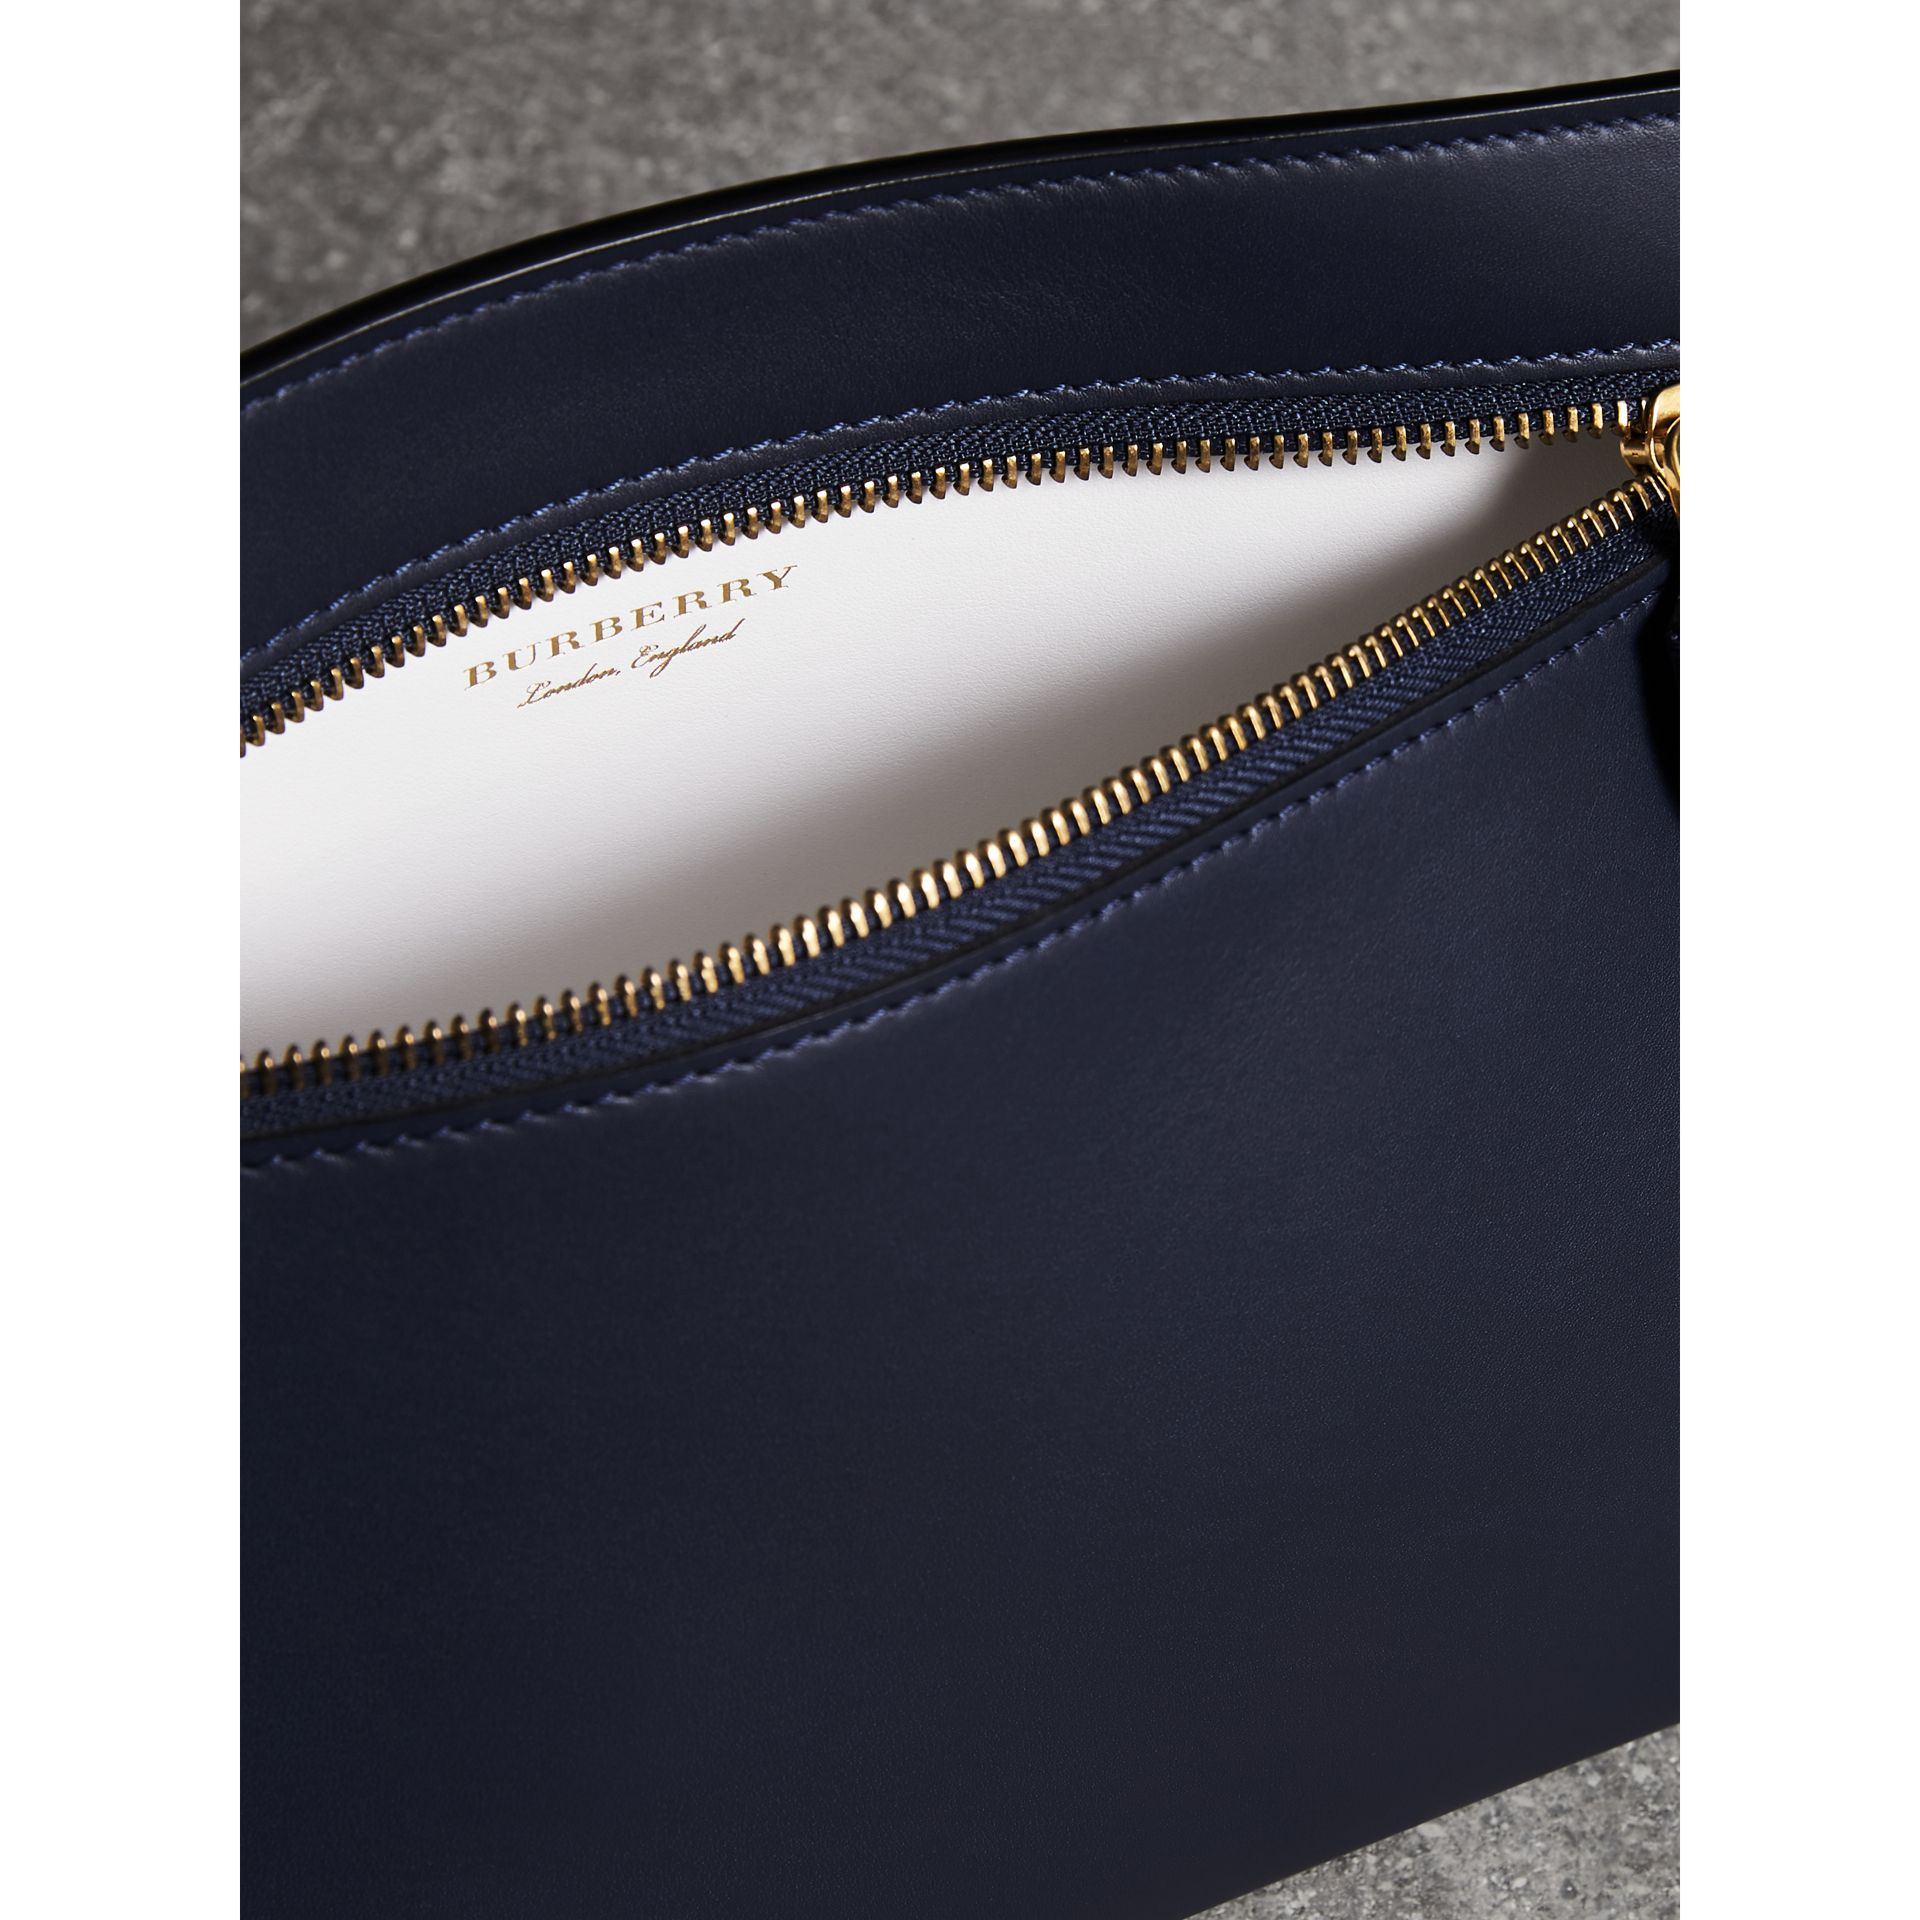 Leather Wristlet Clutch in Mid Indigo - Women | Burberry - gallery image 1